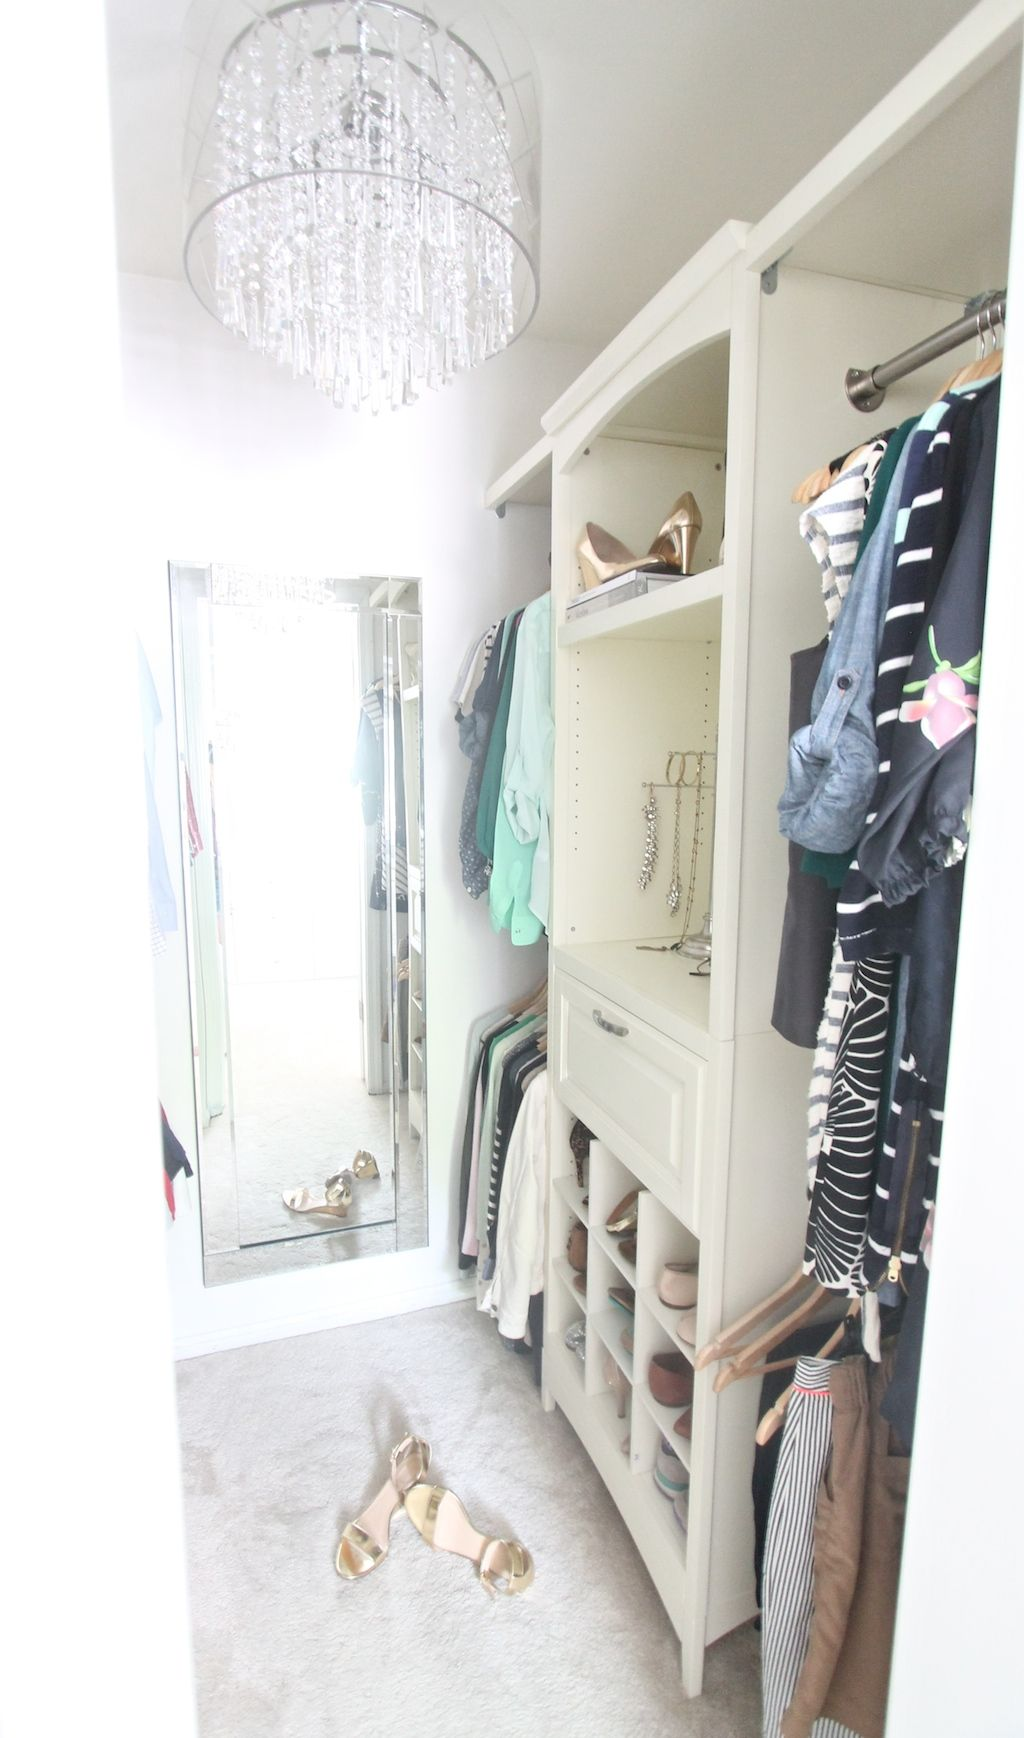 create your dream closet, adding light, space, function & beauty ...